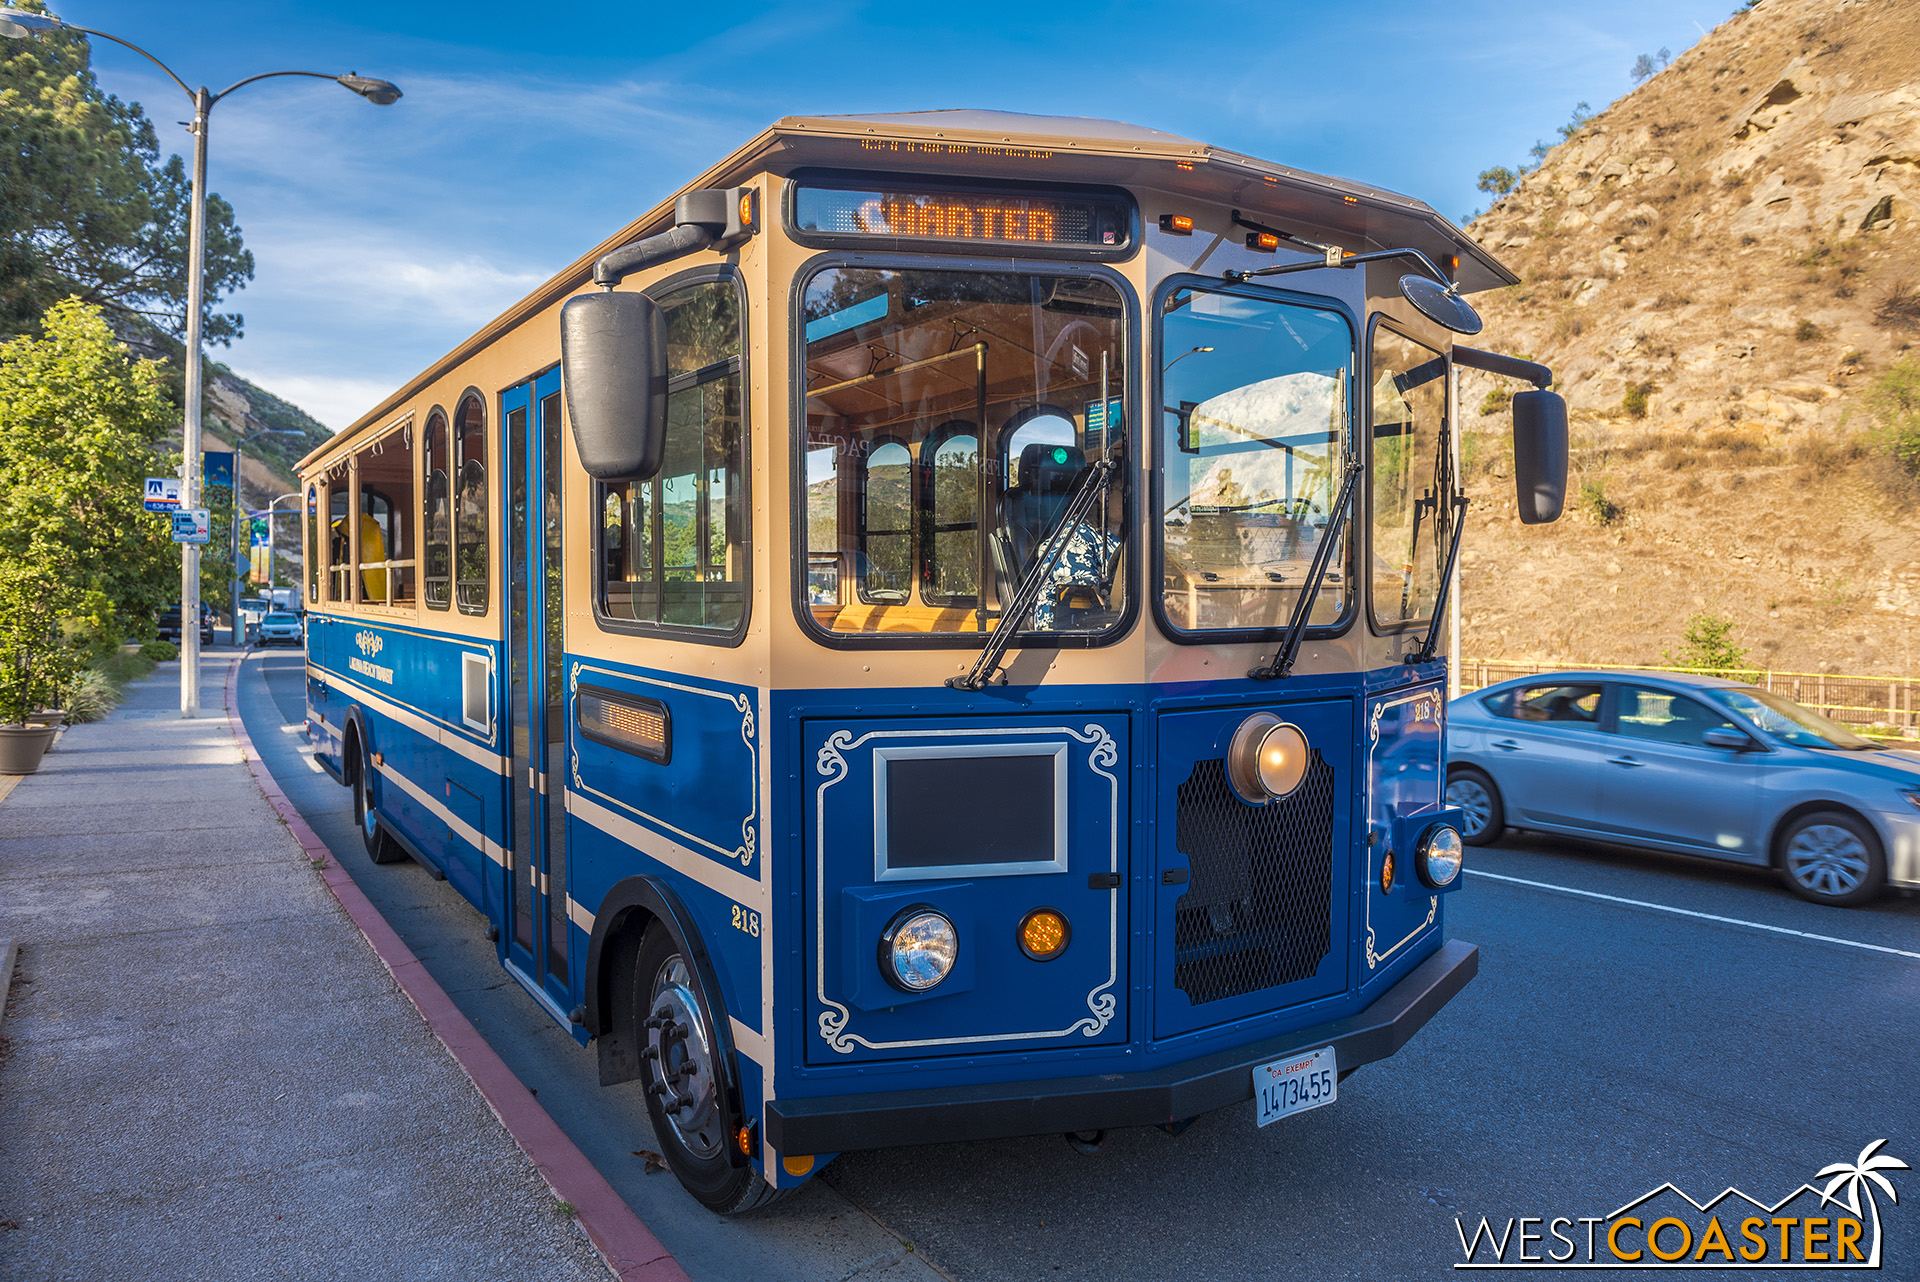 Visitors can take a trolley tram from parking a bit up Laguna Canyon Road down to the venue.